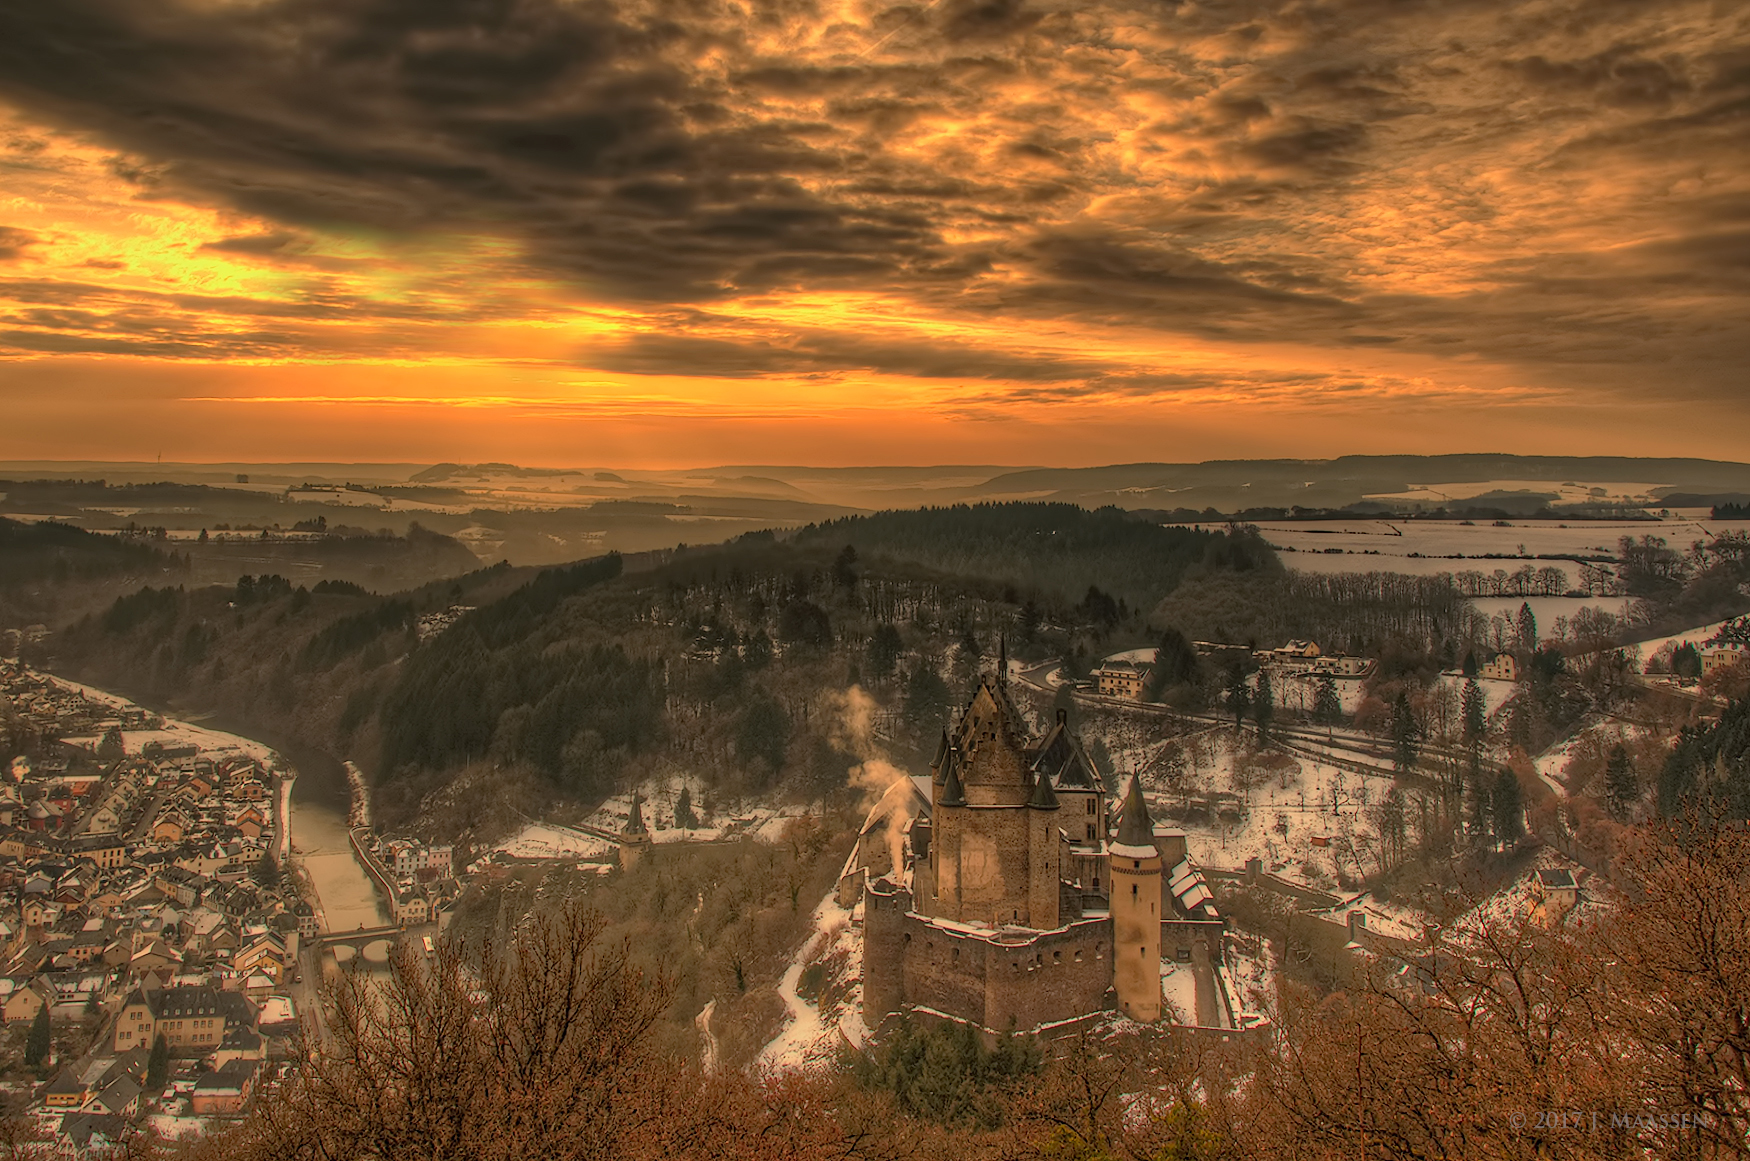 A view over Vianden., Luxembourg